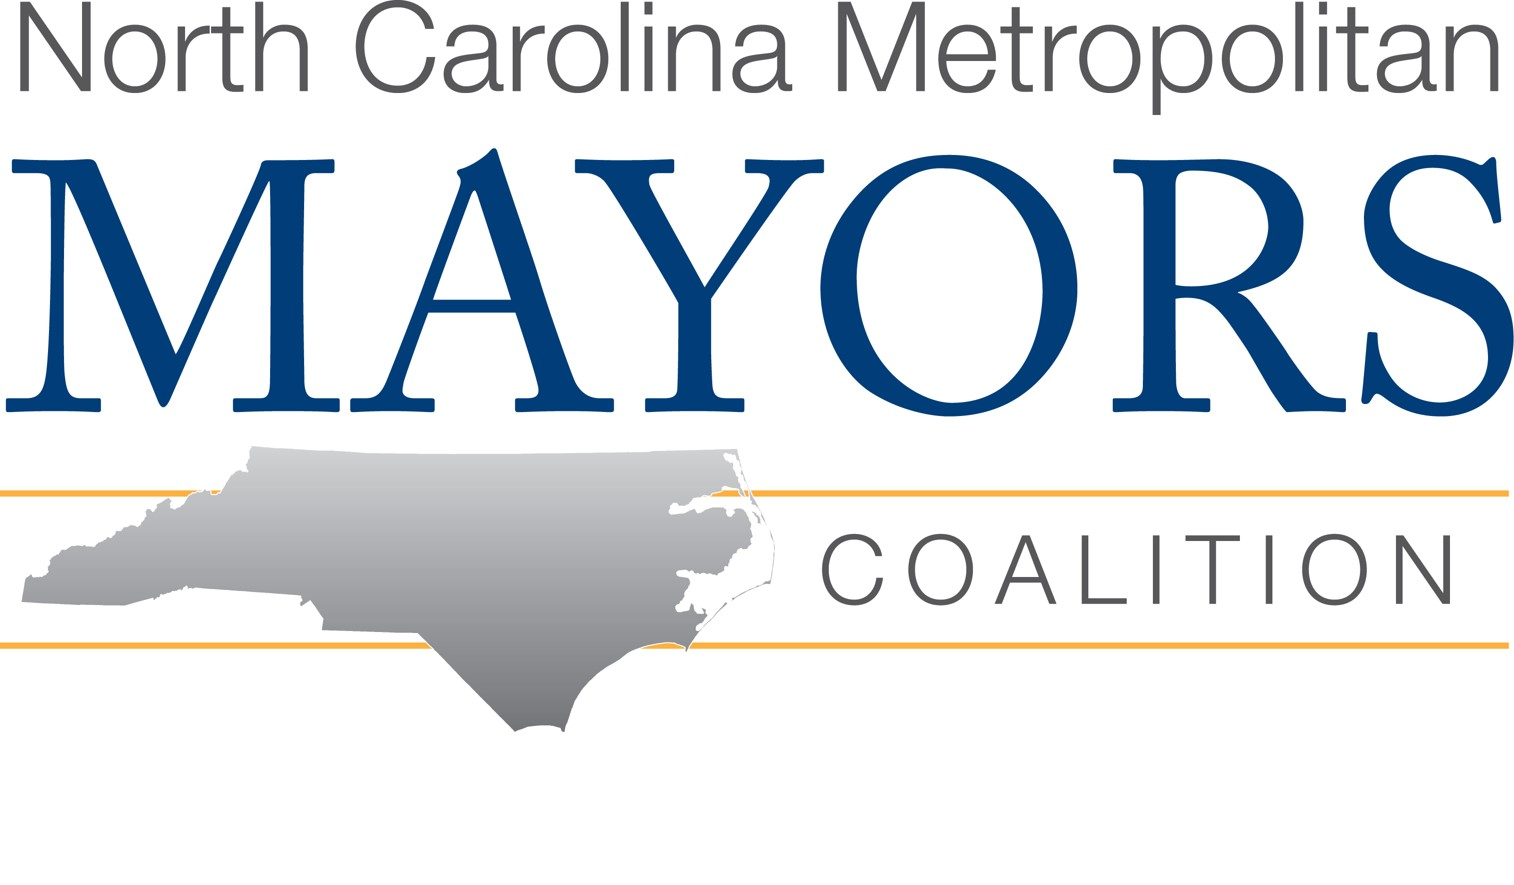 2019 NC Metro Mayors Coalition Meeting